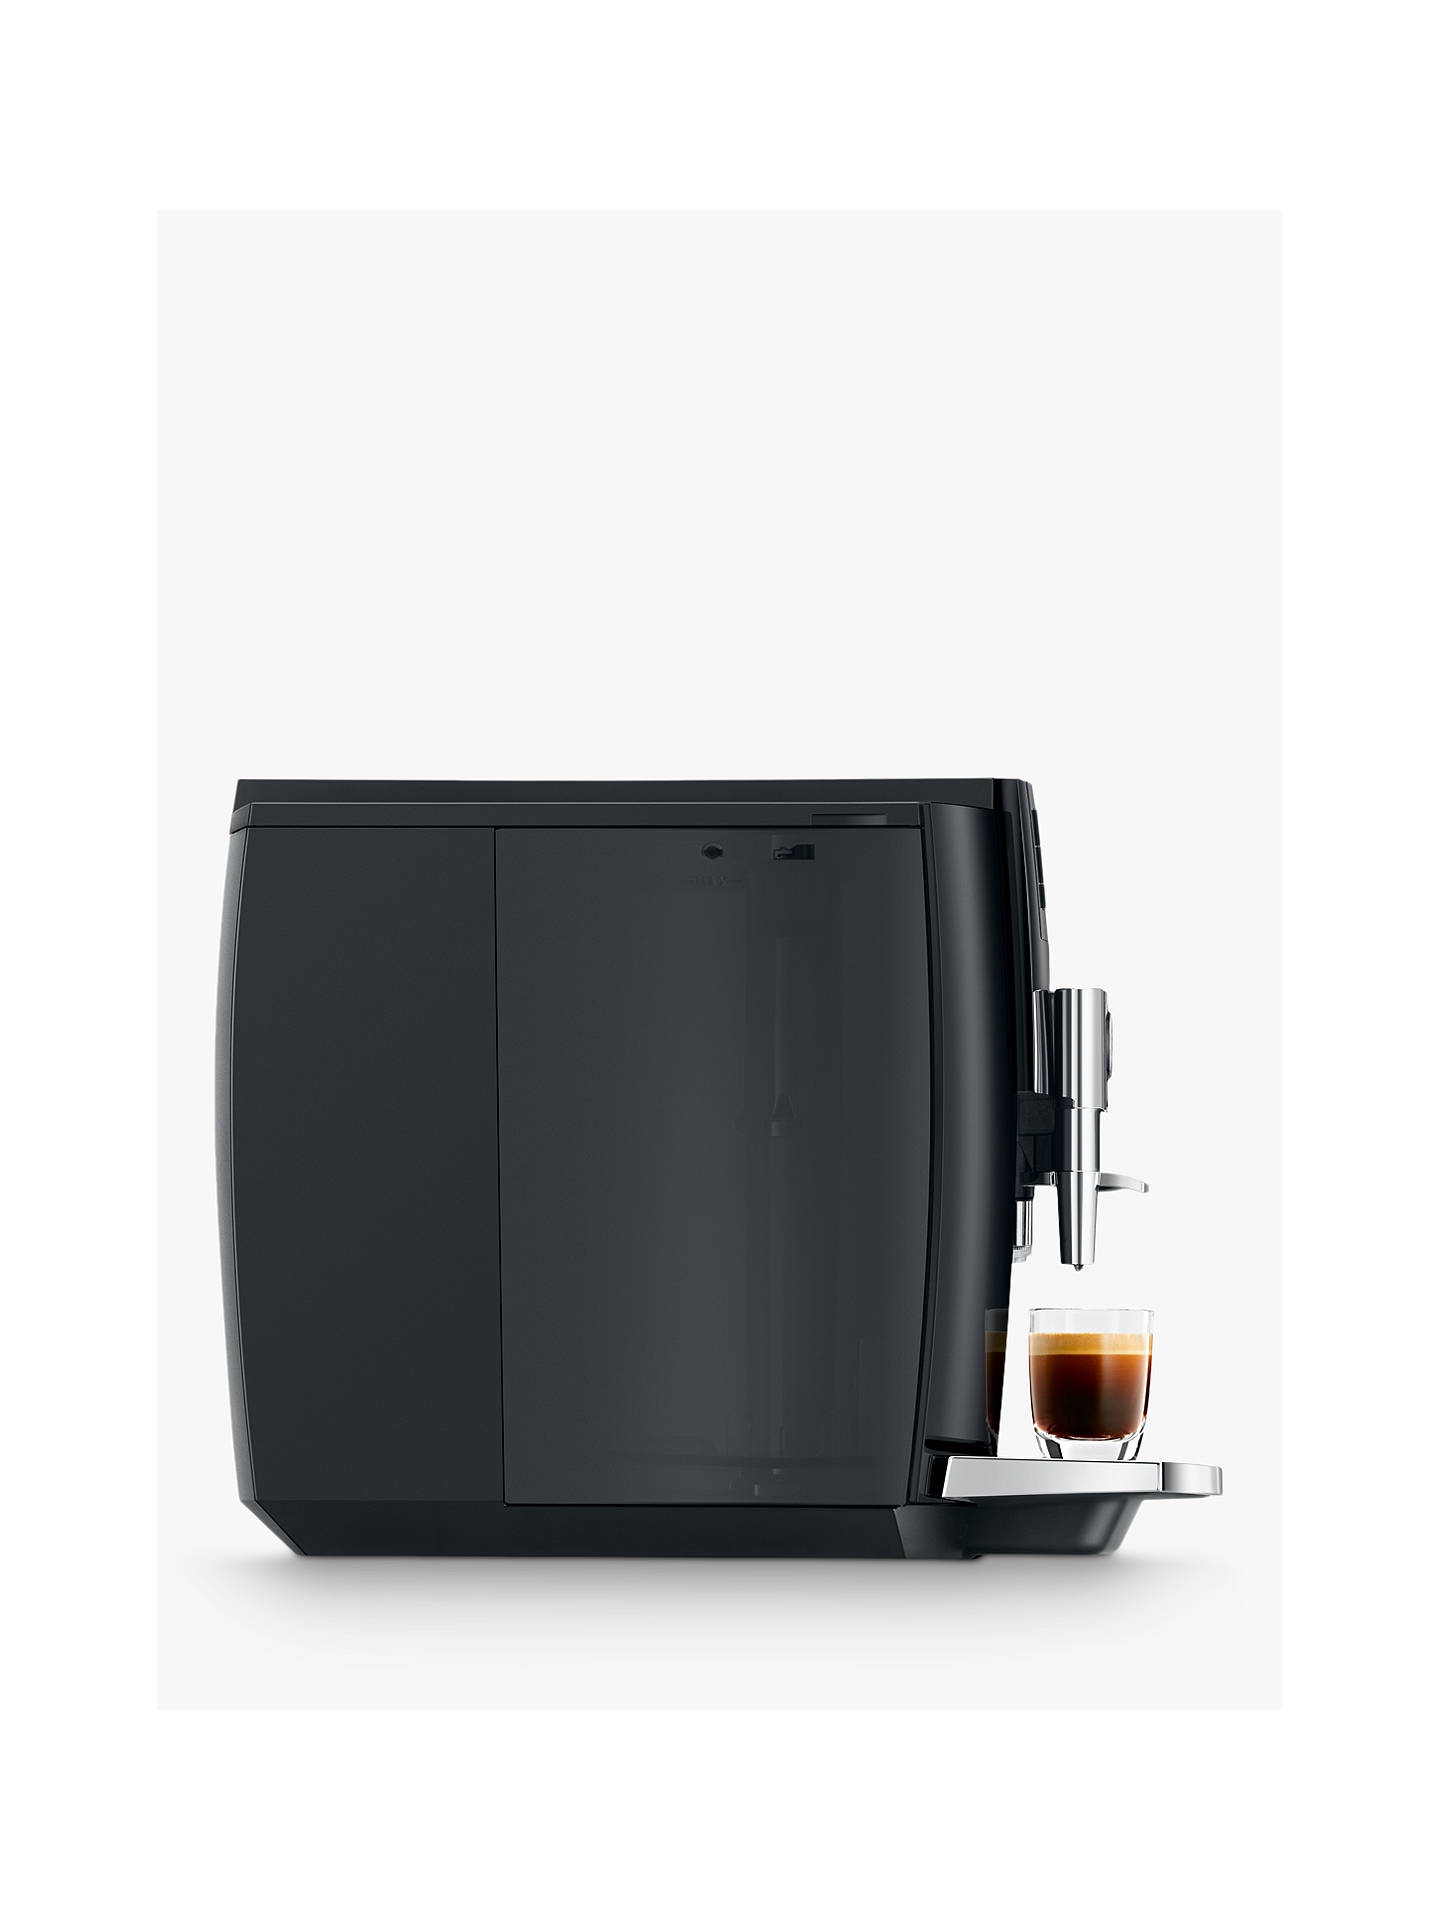 Buy JURA E6 Coffee Machine, Black Online at johnlewis.com